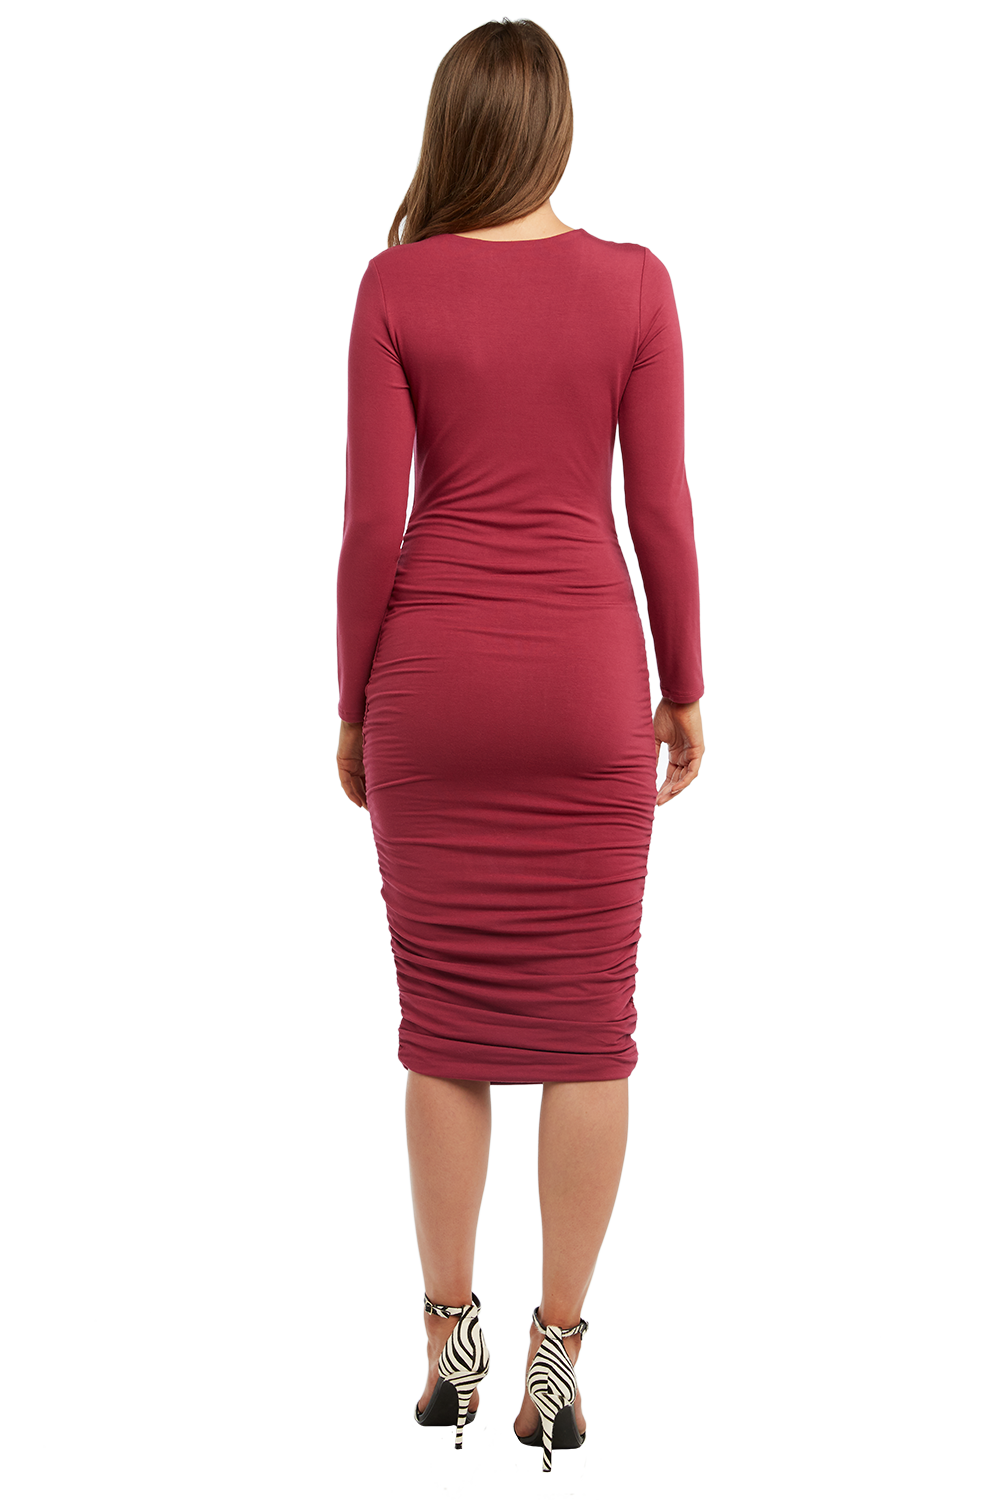 RACHEL ROUCHED DRESS in colour DRY ROSE